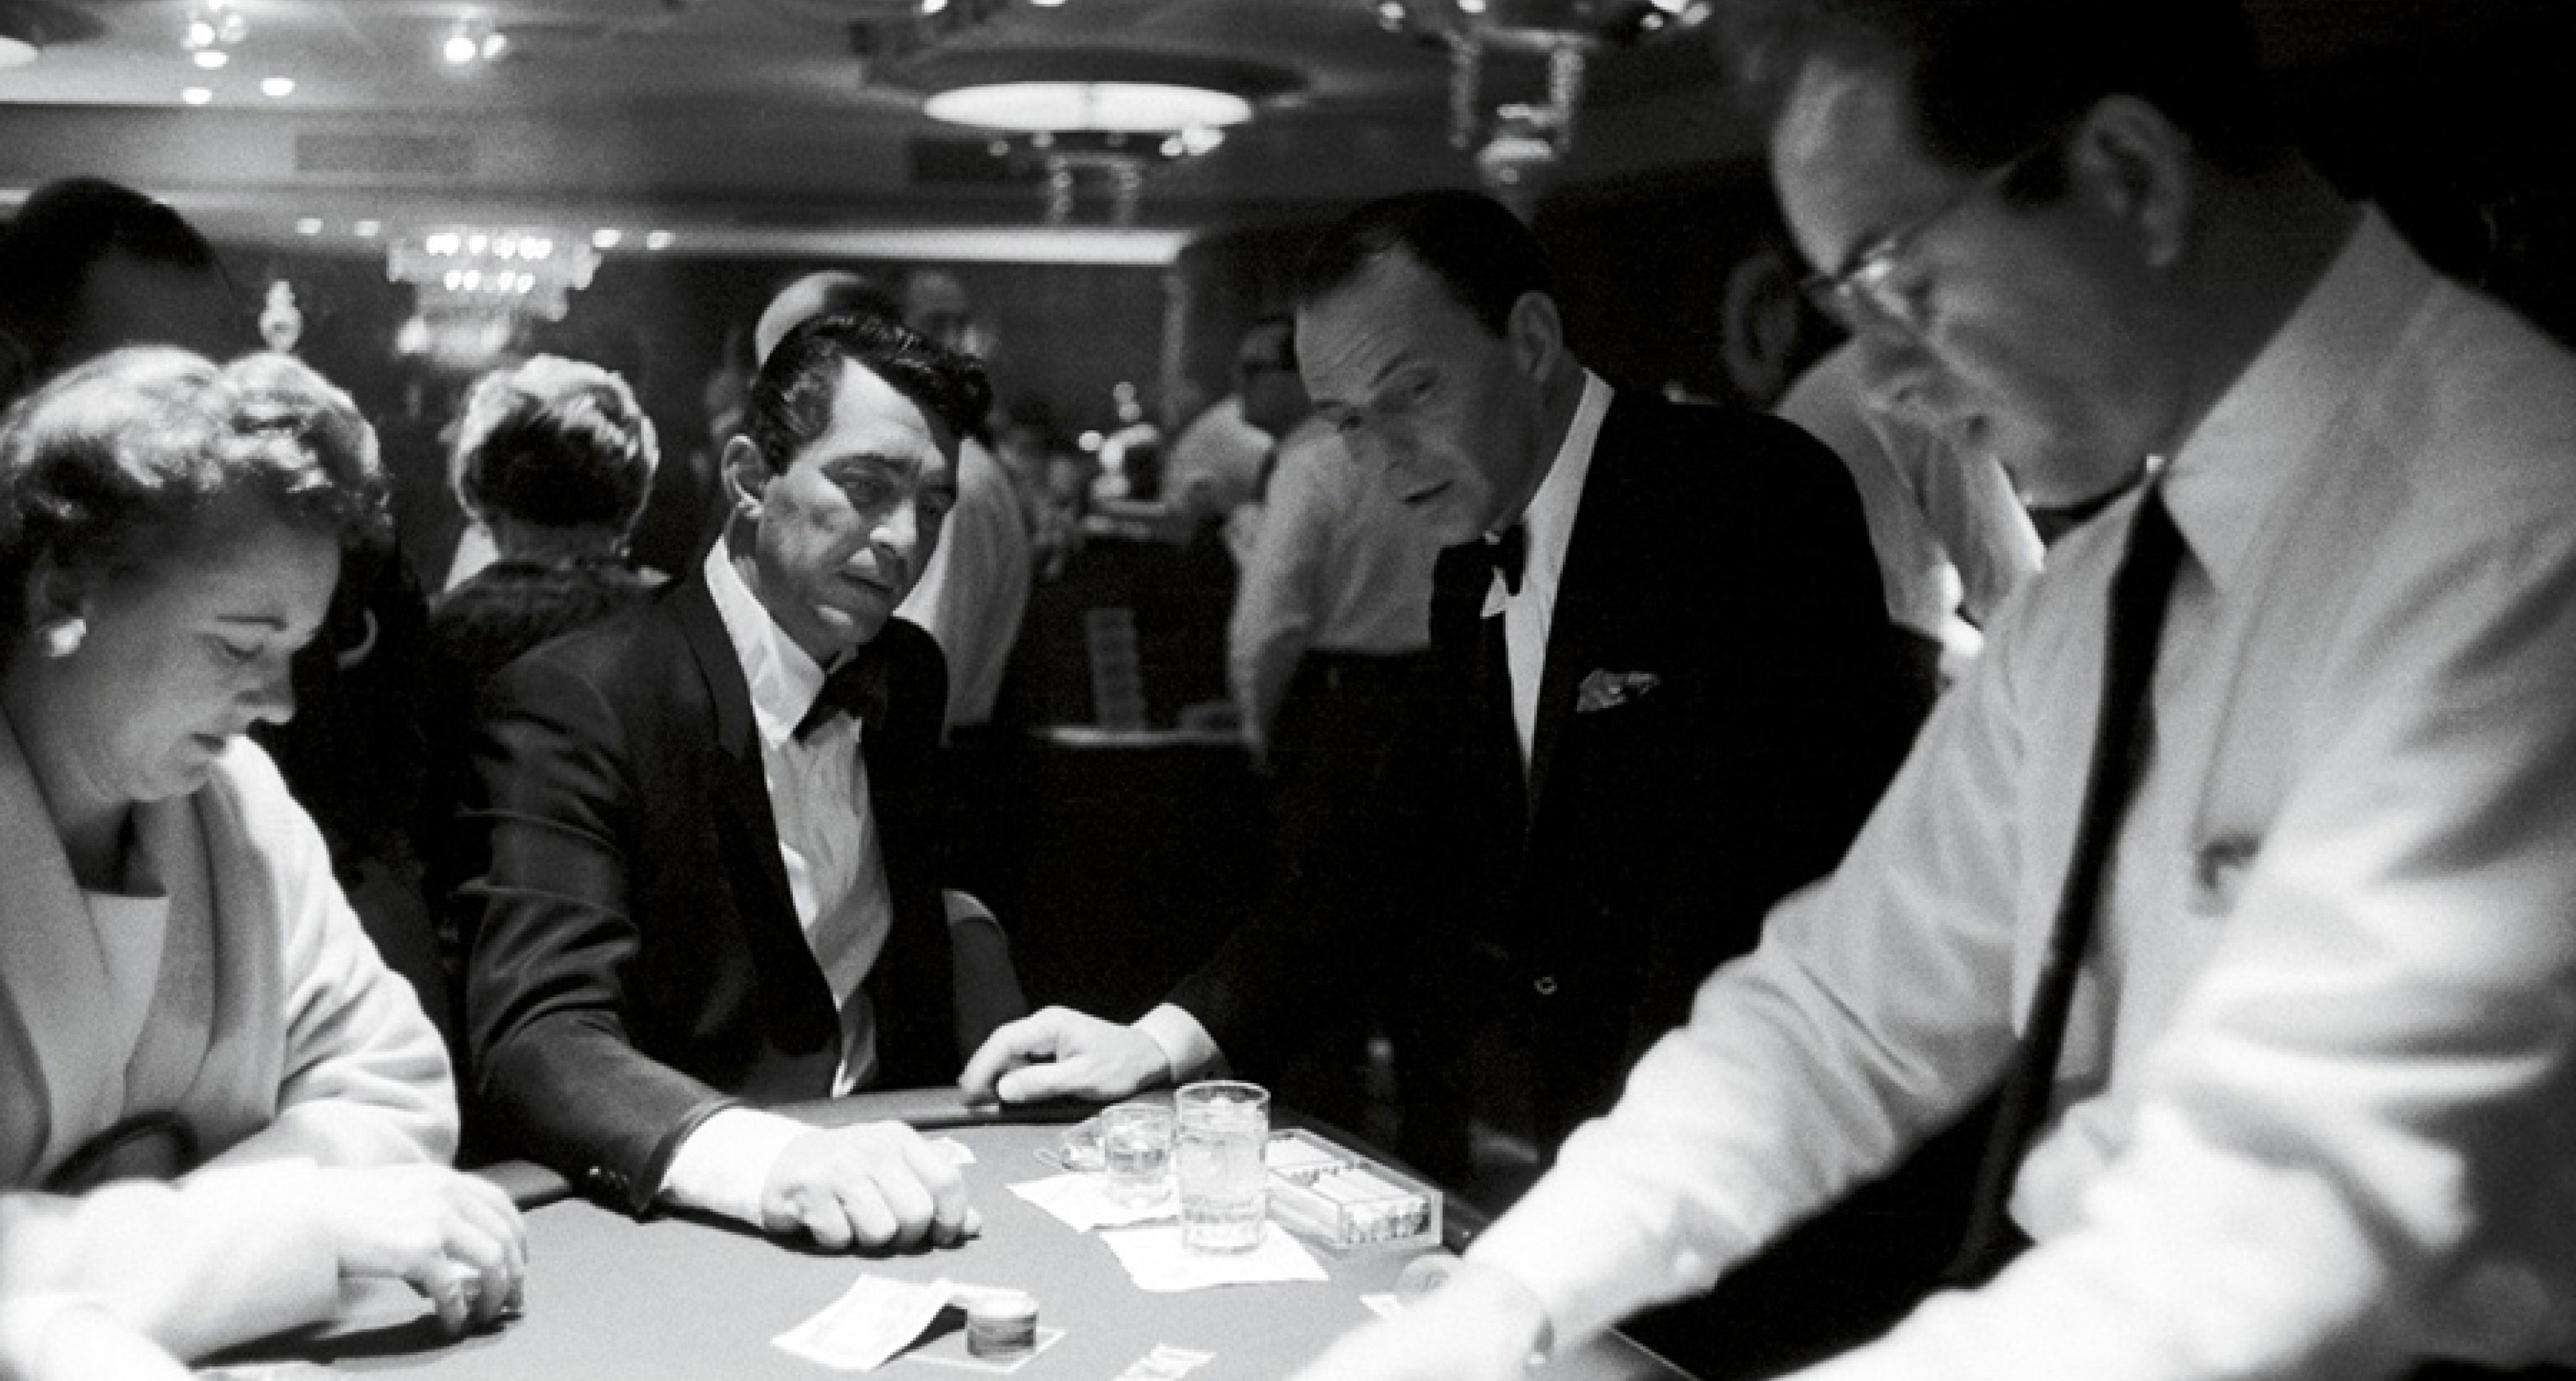 The Gentleman's Library: The Rat Pack